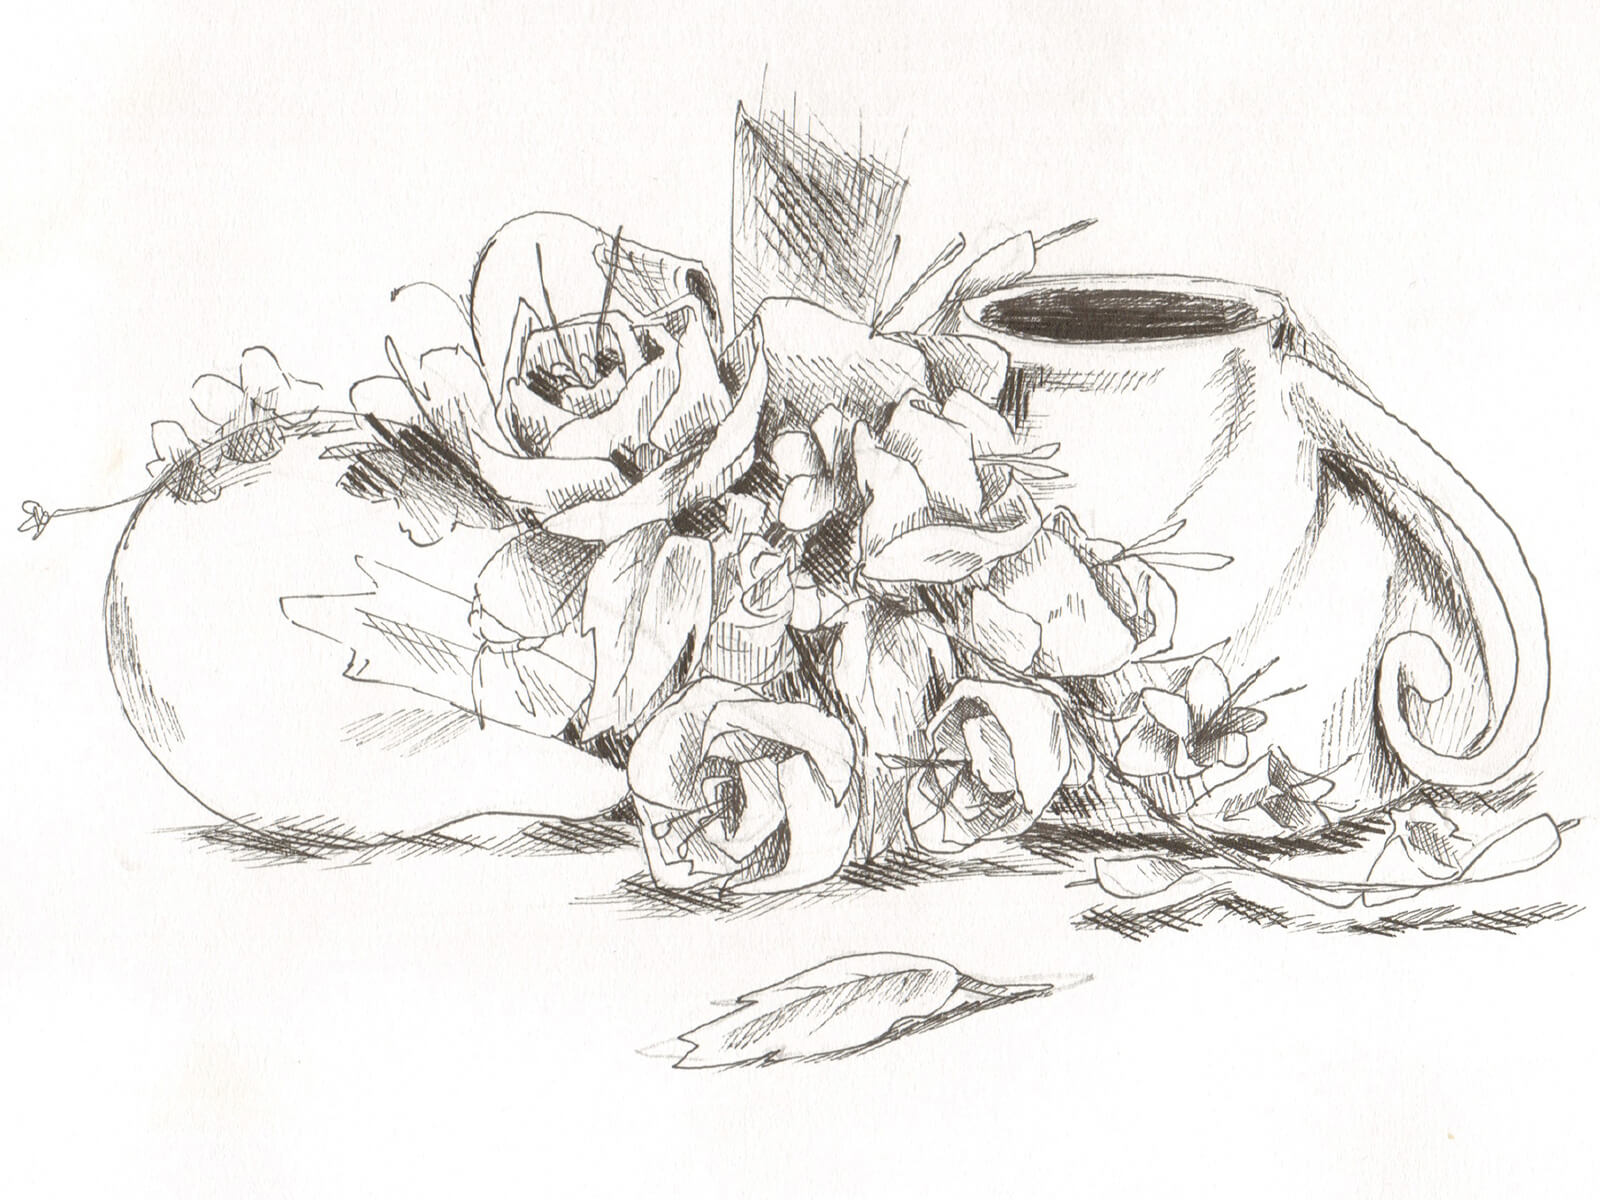 Still-life, black-and-white sketch of an overturned cup, light bulb, and flowers.